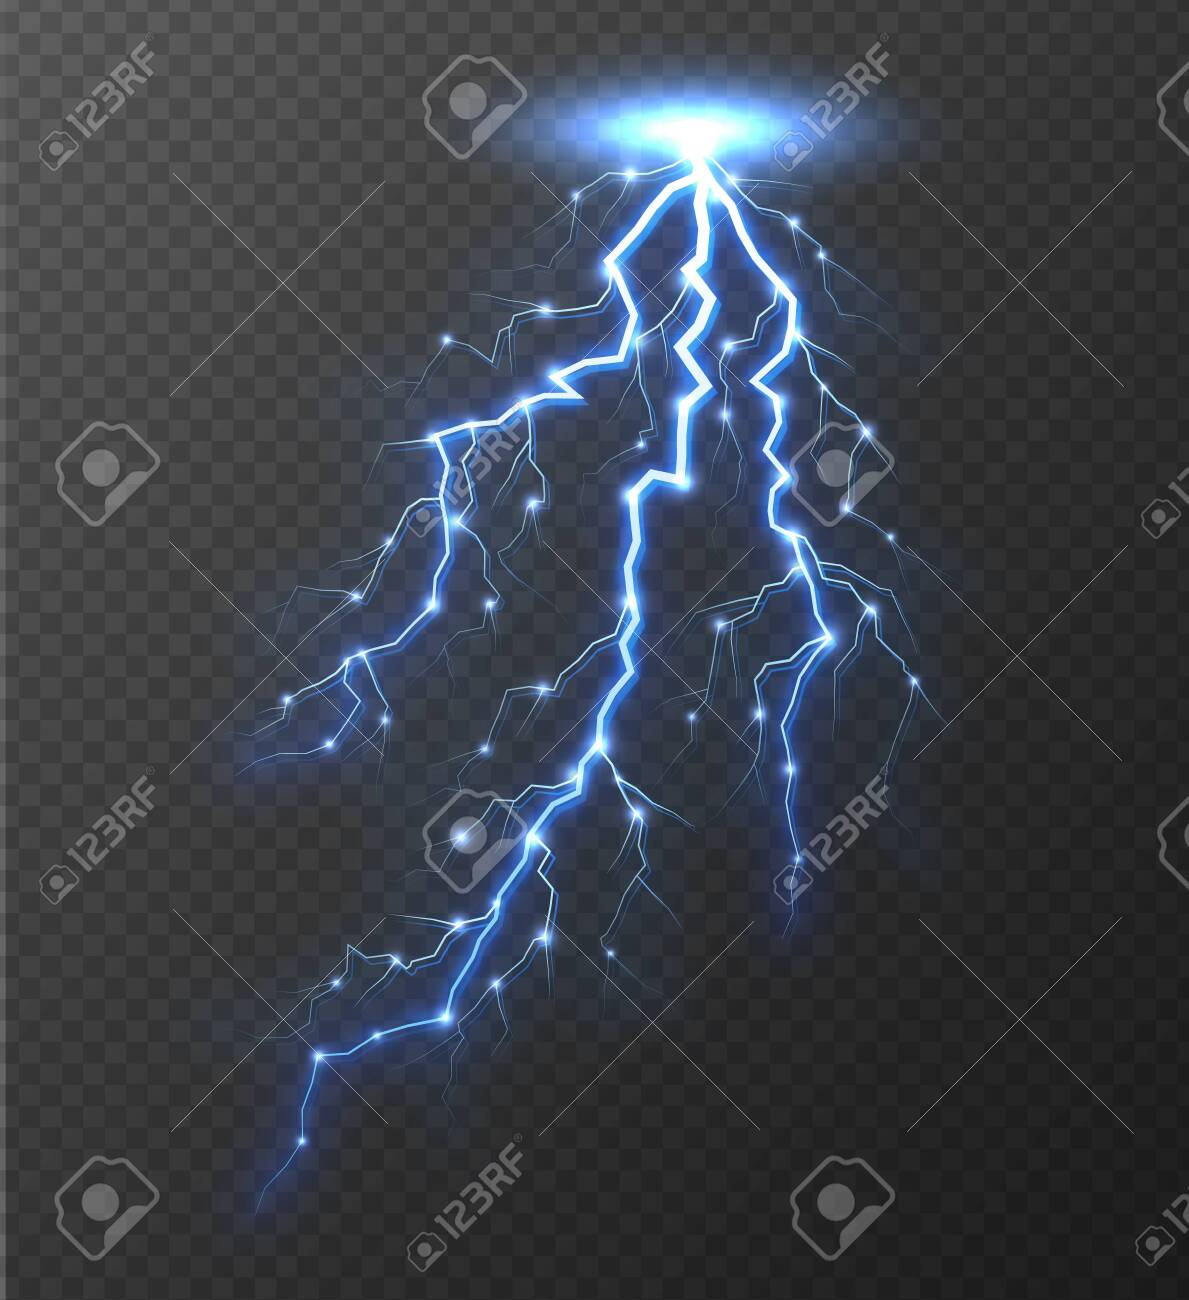 Lightning Bolt Isolated On Transparent Background Realistic Royalty Free Cliparts Vectors And Stock Illustration Image 131901593